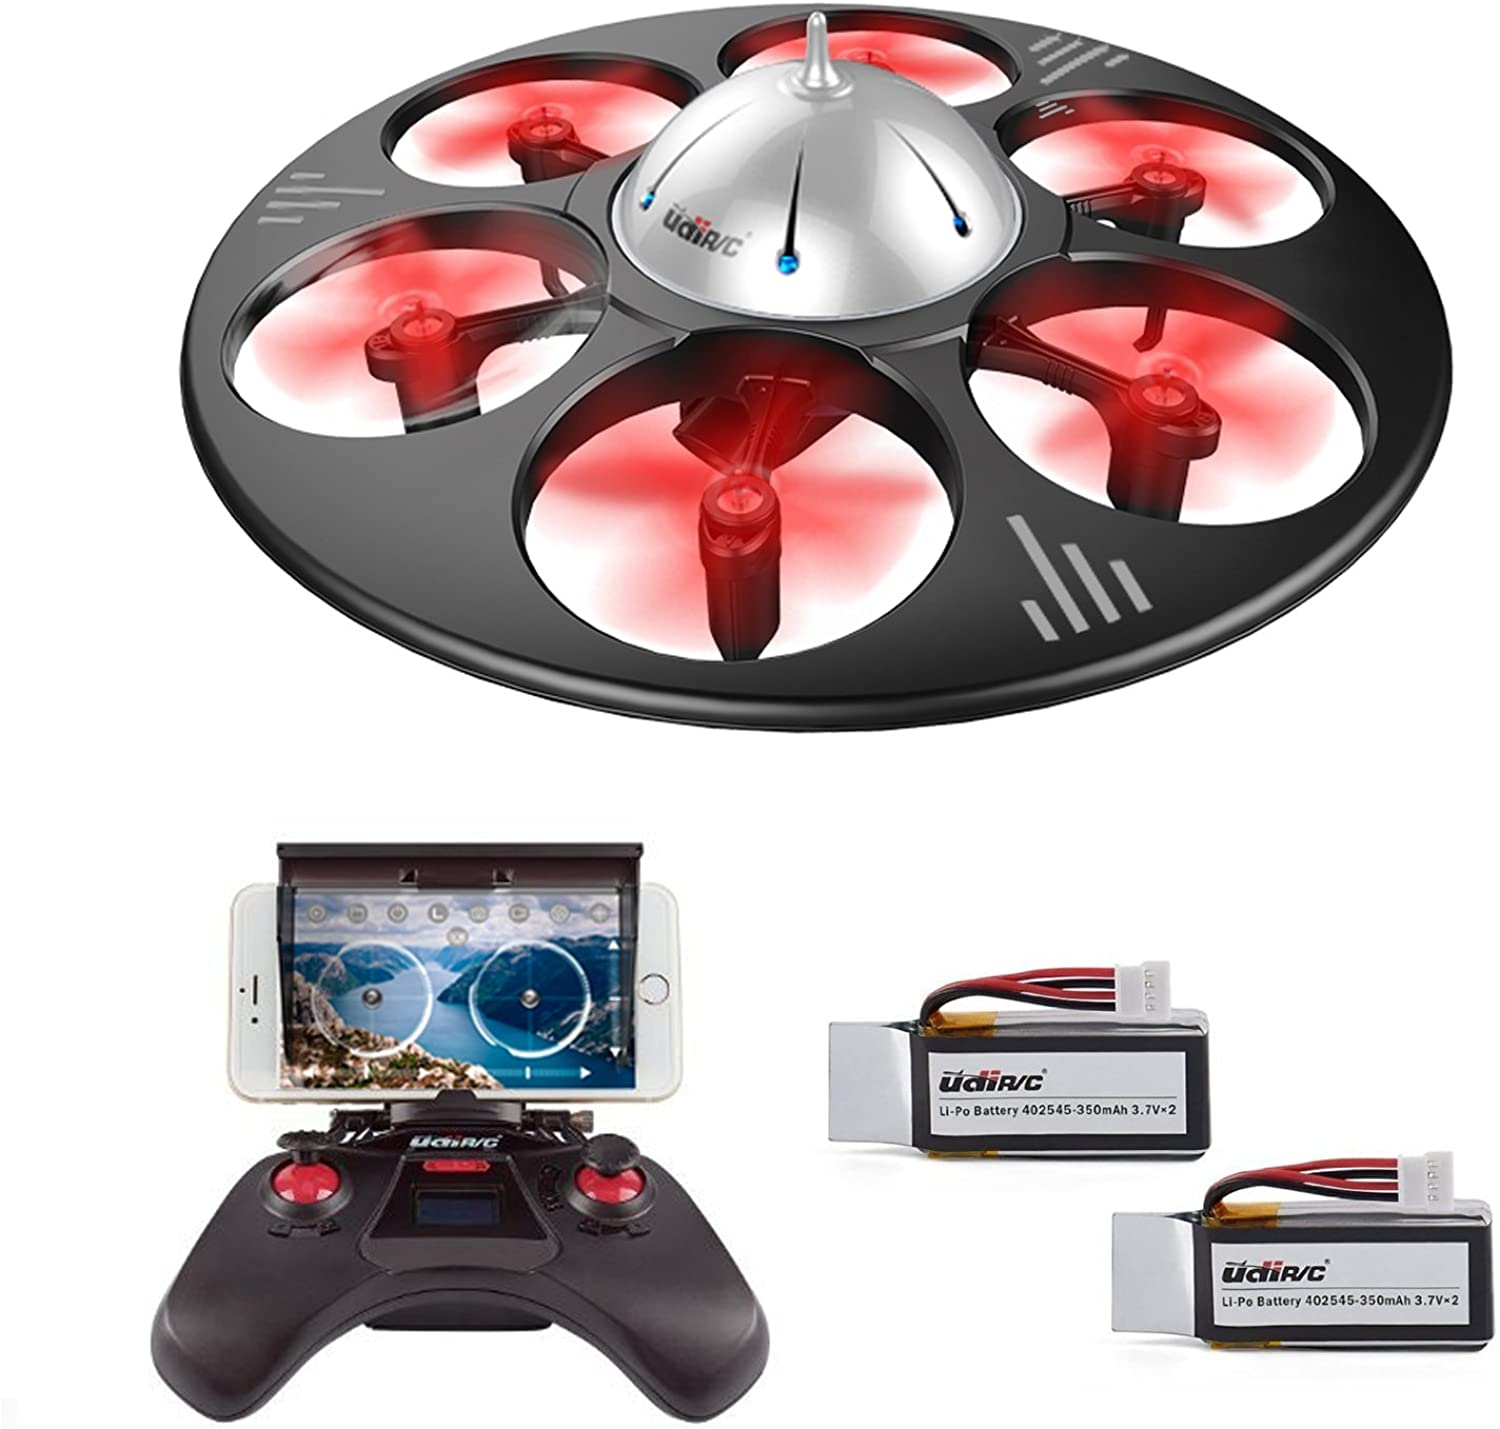 DBPOWER U845 UFO Drone for Kids with Camera Headless Mode Remote & Smartphone Control Modes with Extra Battery